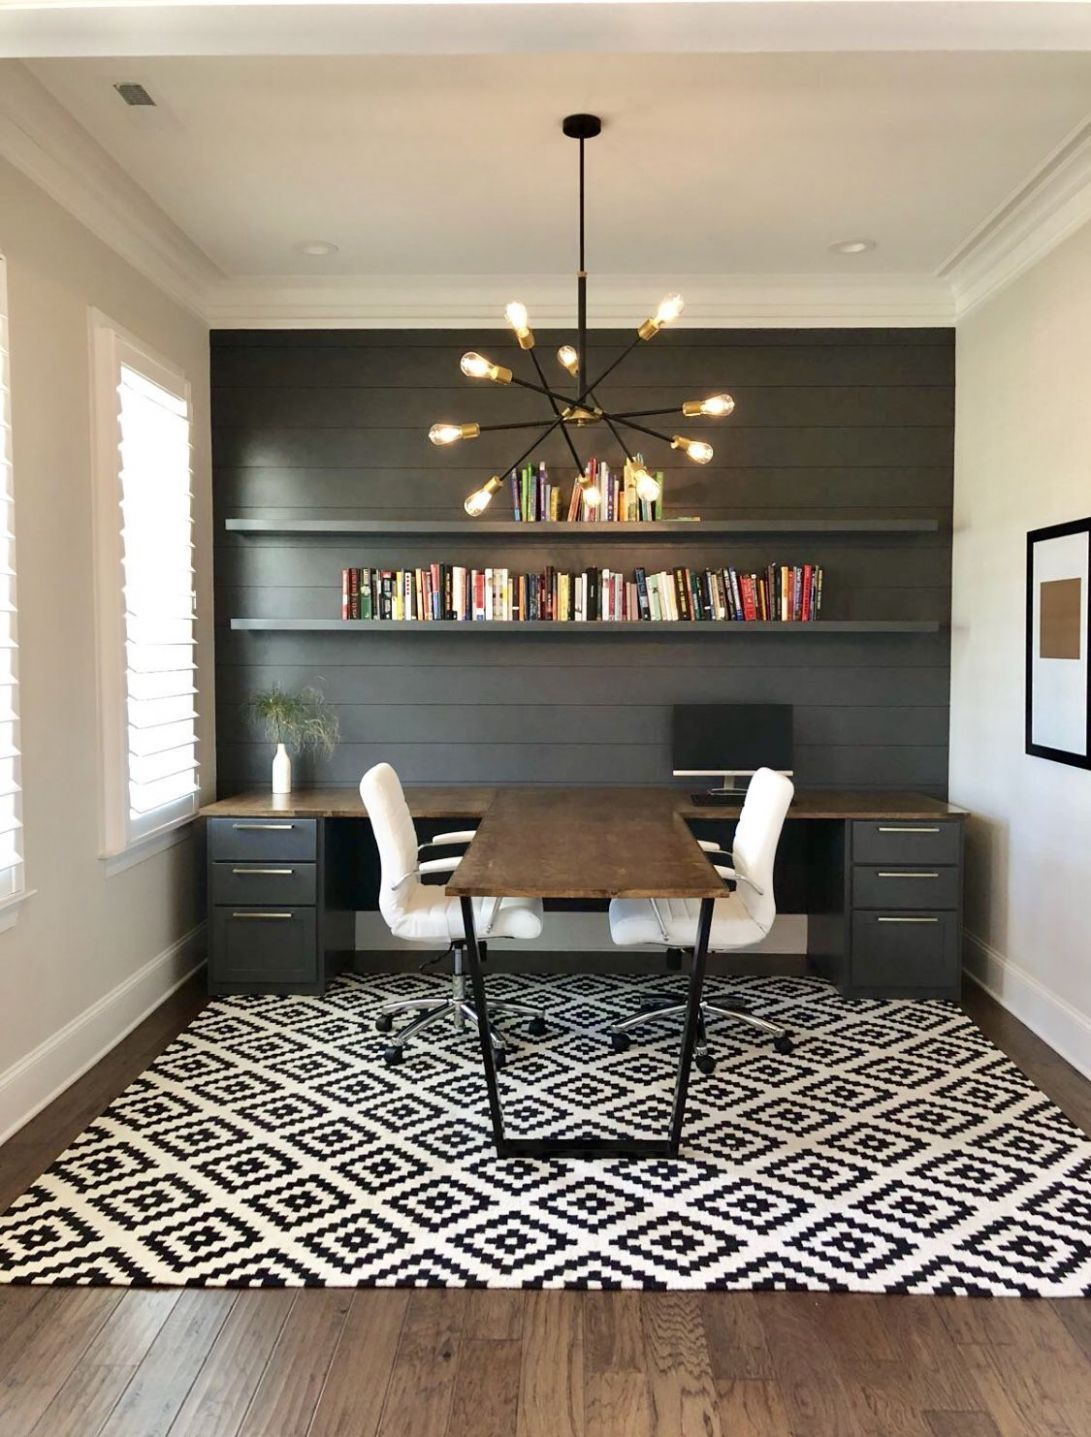 8 Amazing Home Office Ideas Will Make You Want to Work | Home ..